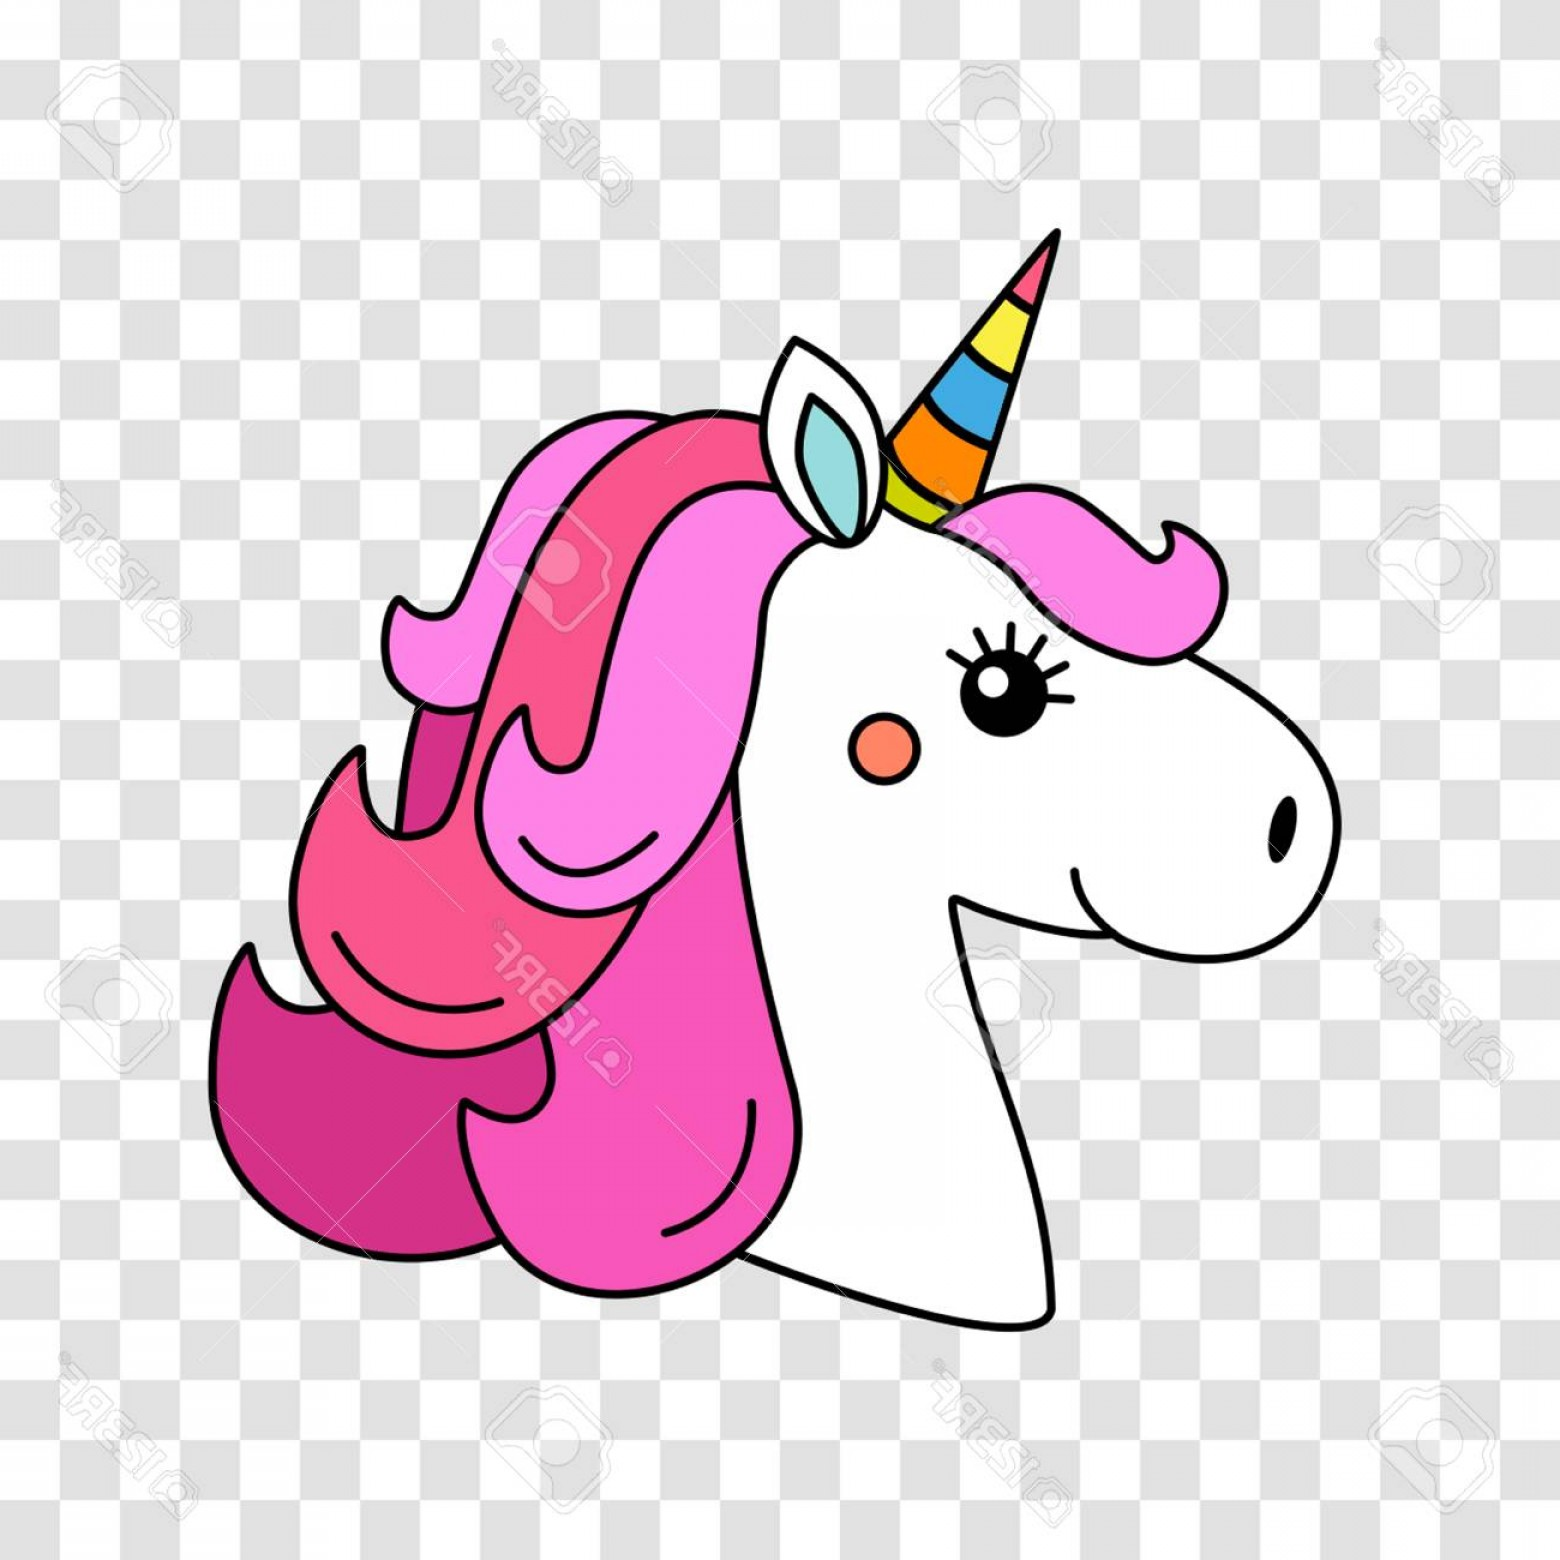 1560x1560 Photostock Vector A Funny Character Of The Muzzle Of A Unicorn